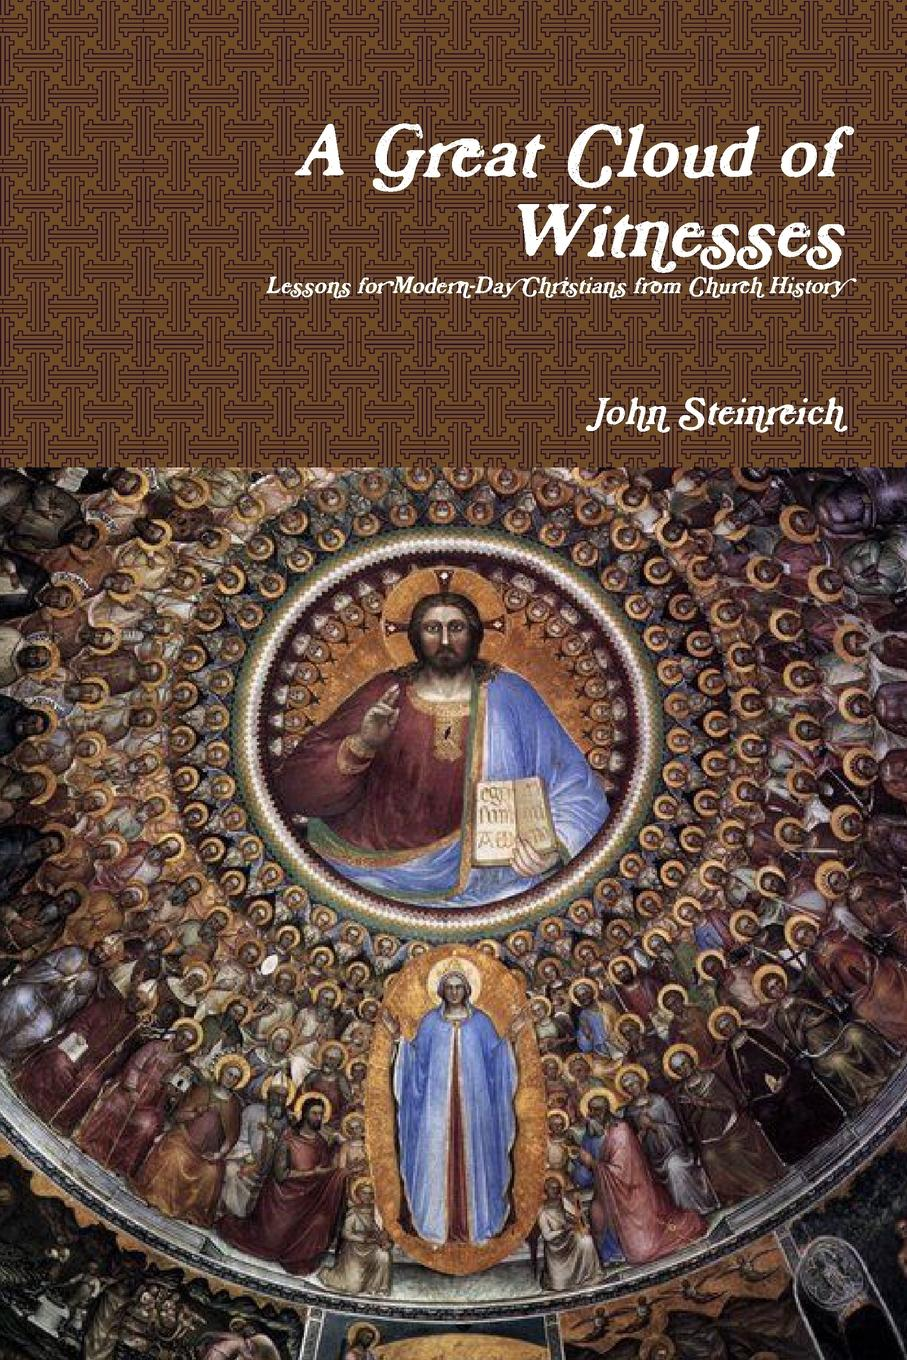 John Steinreich A Great Cloud of Witnesses